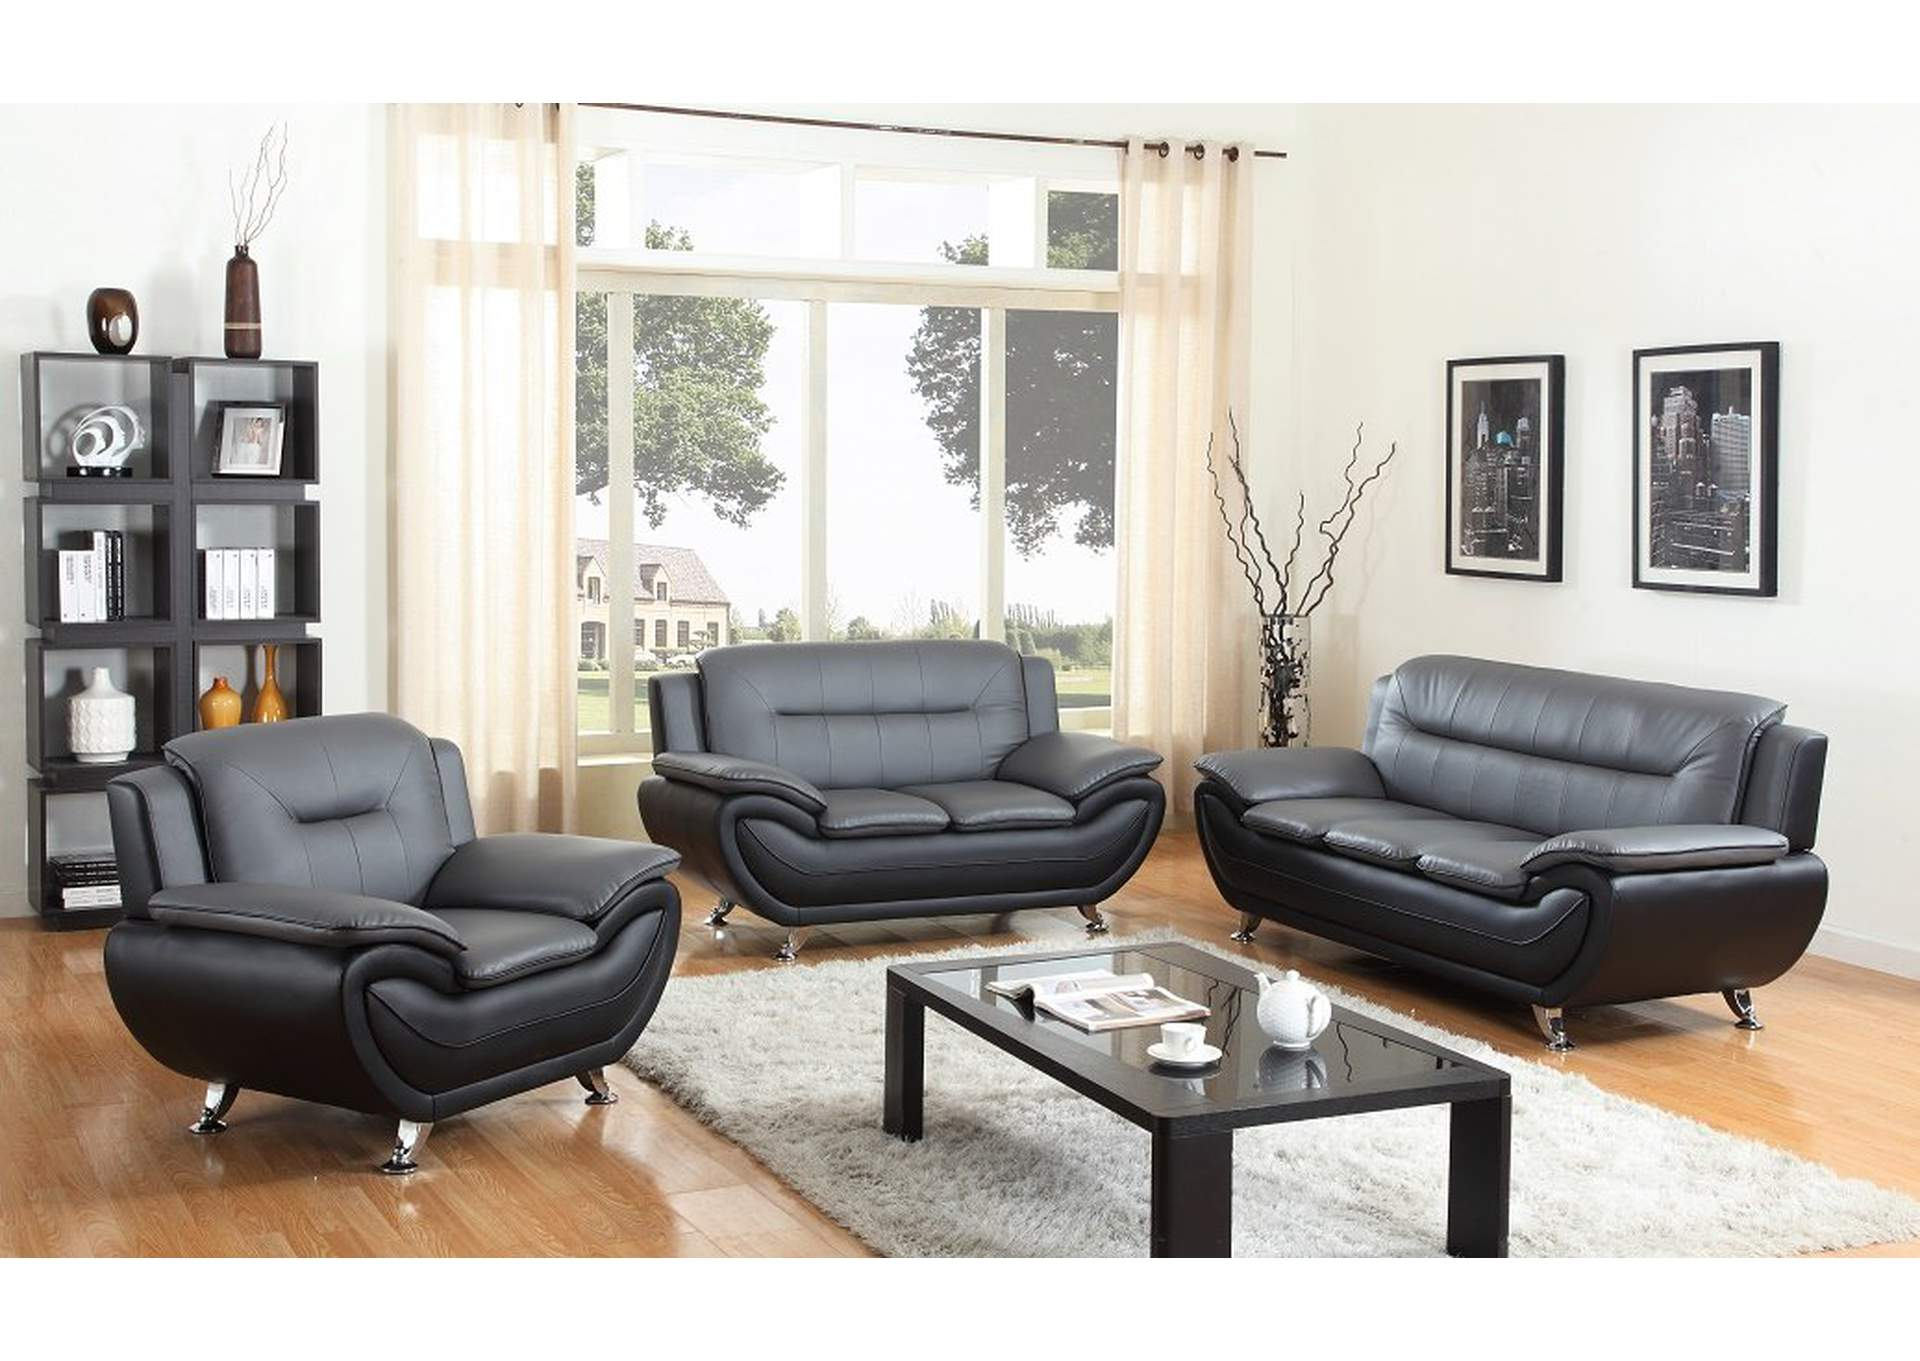 Picture of: Grey Black Leather Sofa Loveseat W Chrome Legs The Furniture Outlet Ny